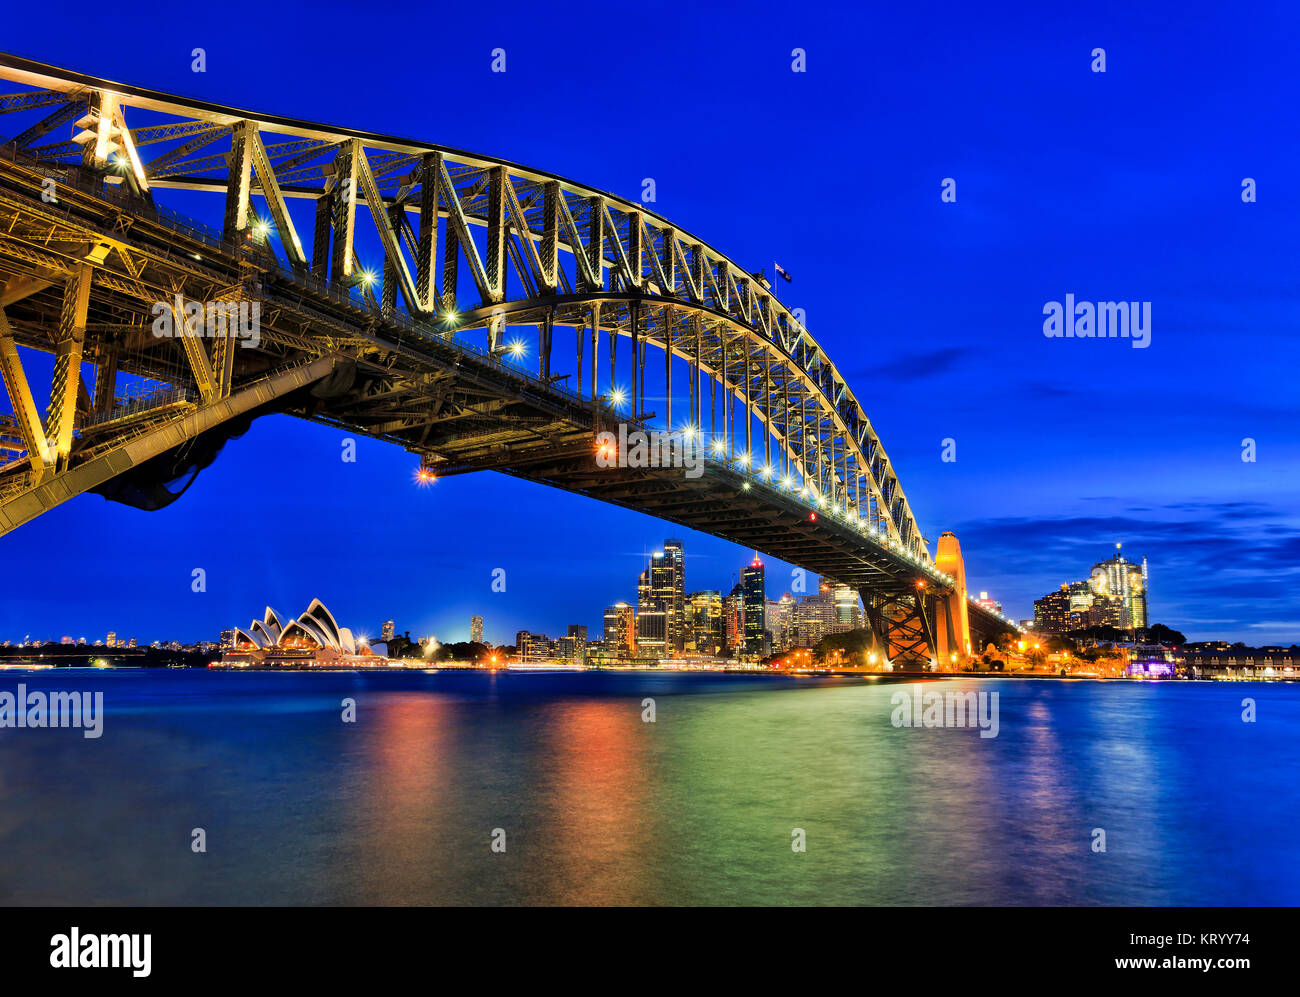 Side view of Sydney Harbour bridge towards city CBD, the Rocks and Circular quay at sunset across blurred reflecting - Stock Image